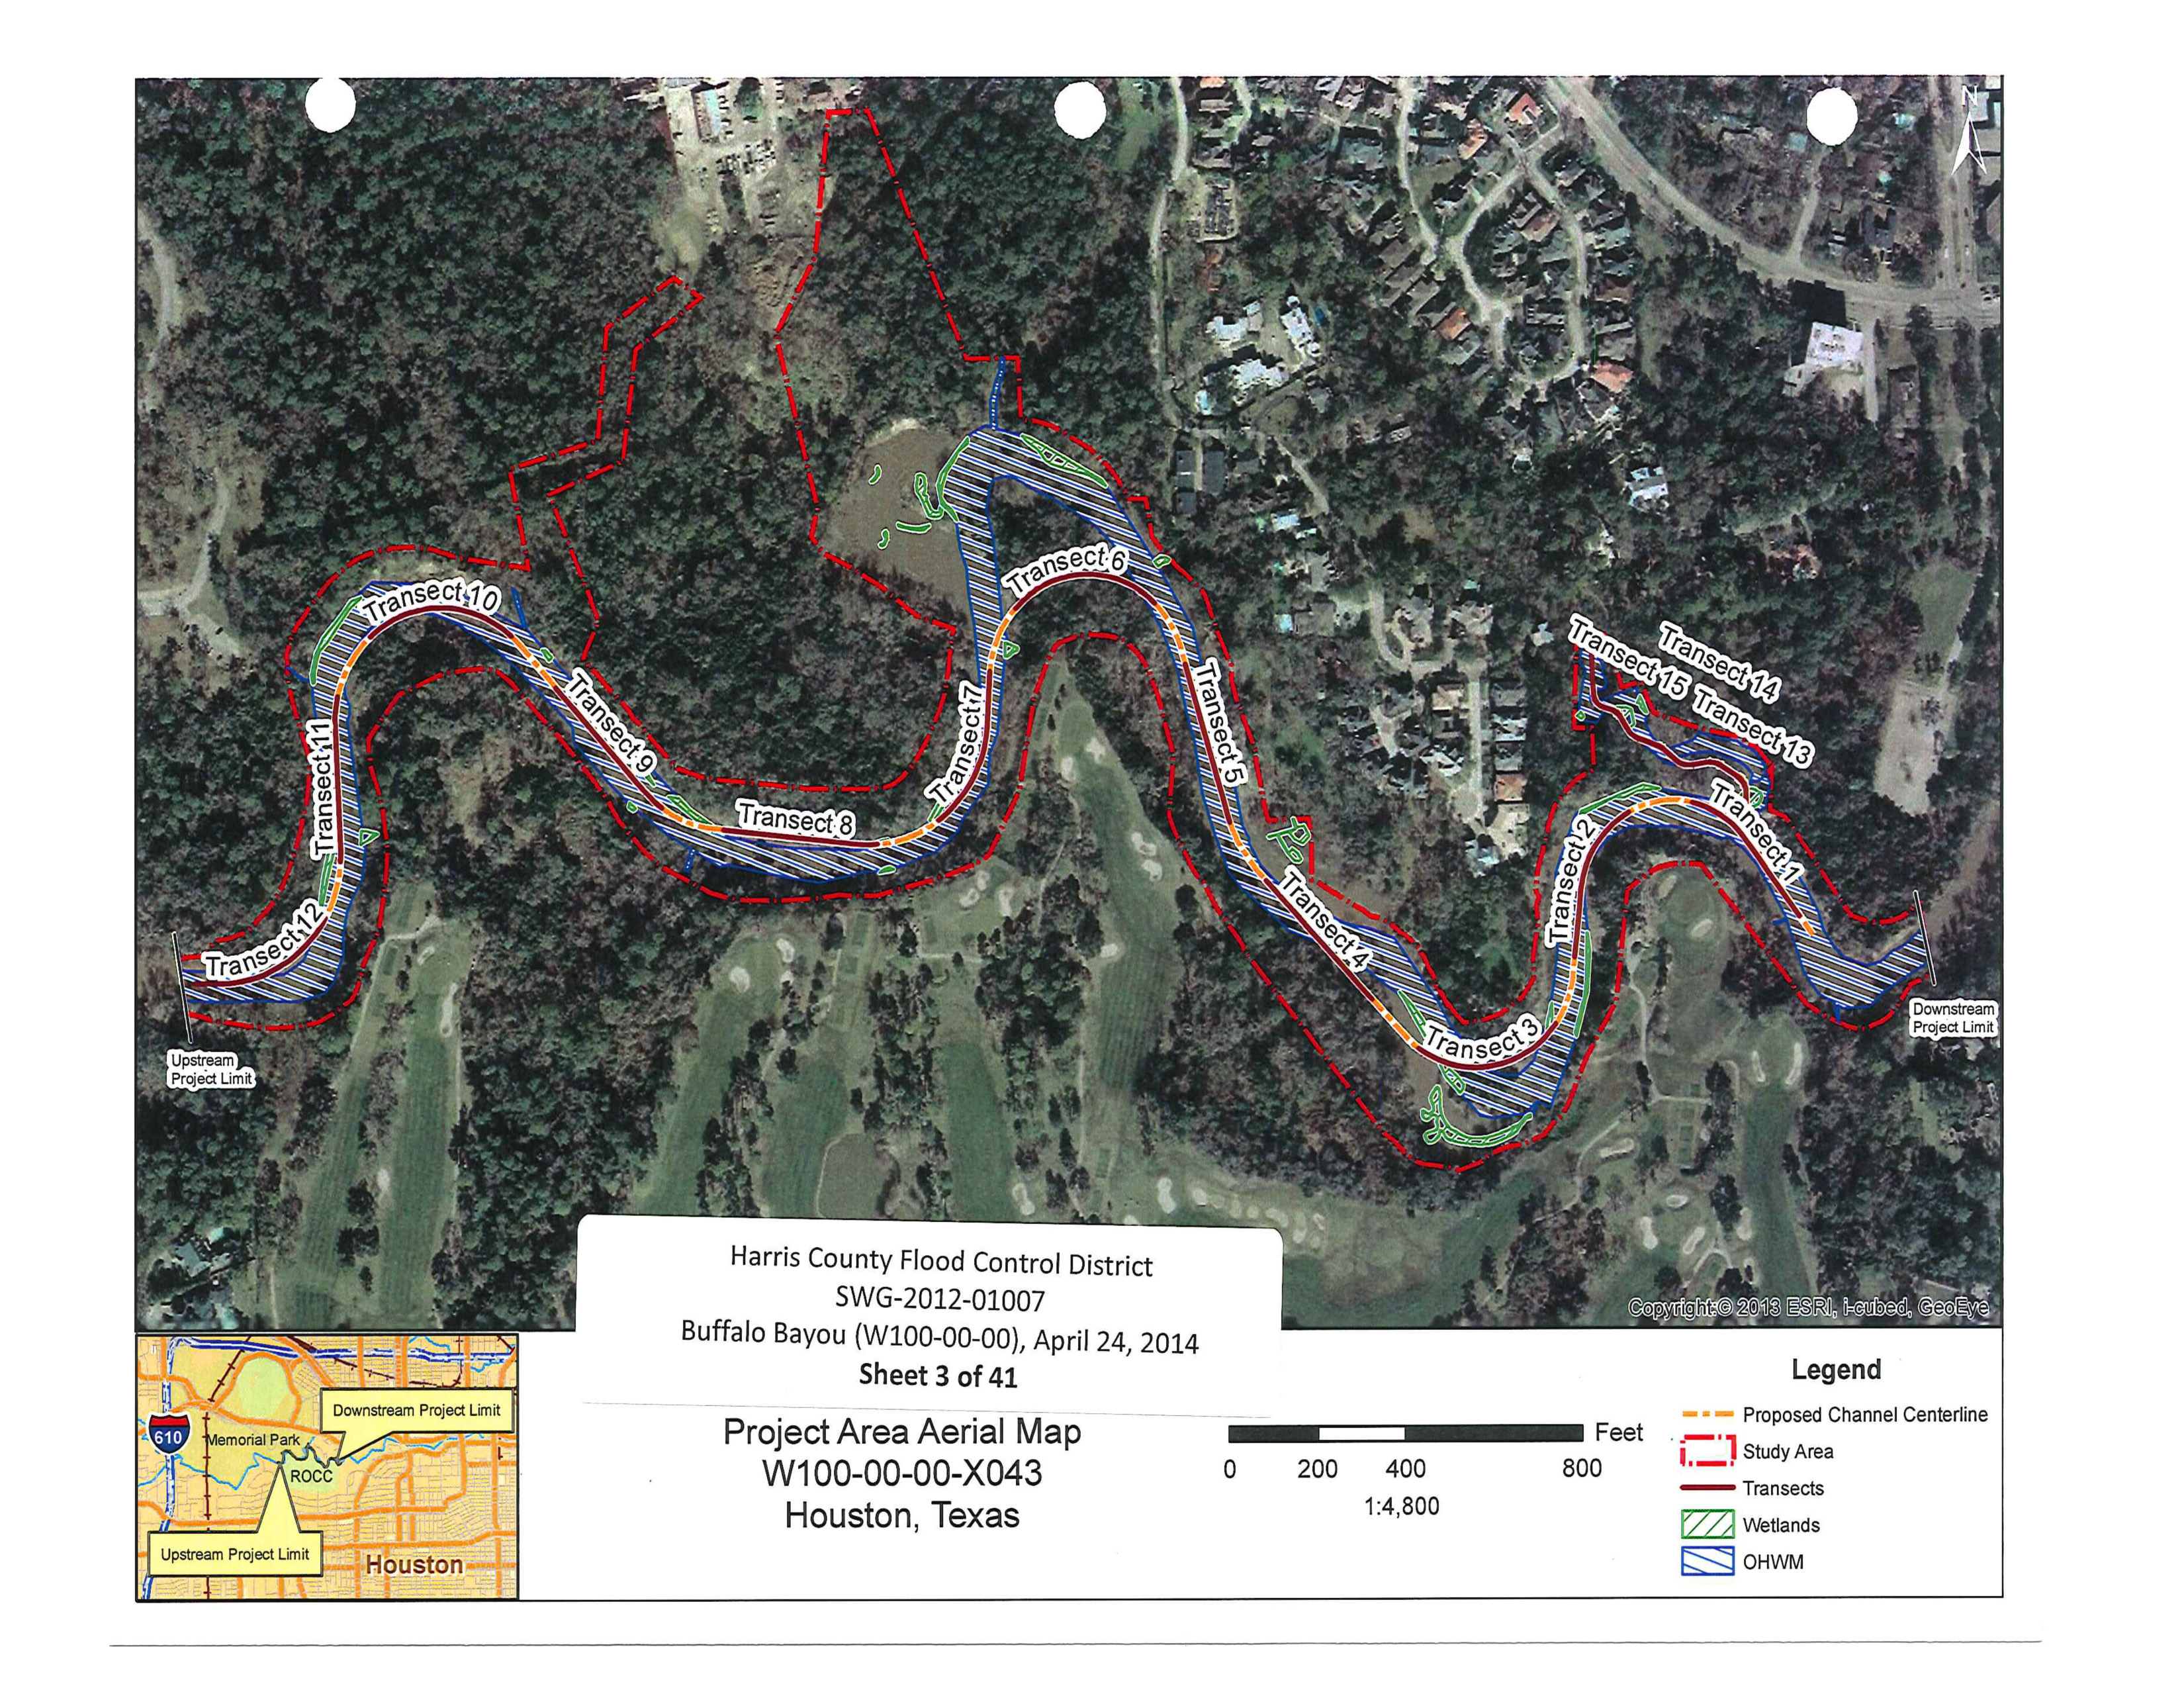 Map 1: The dotted red lines show the 14.35 acres of riparian forest to be scraped and bulldozed. According to the HCFCD, 80 percent of the vegetation in the targeted area will be removed. Note the areas to be cleared of trees extends into the interior of Memorial Park towards the maintenance facility. This is for access by heavy equipment to the bayou. Also note the land and forest to be lost by the River Oaks Country Club on the south, and the destruction of a scenic tributary and a magnificent high bluff in the Hogg Bird Sanctuary on the north.